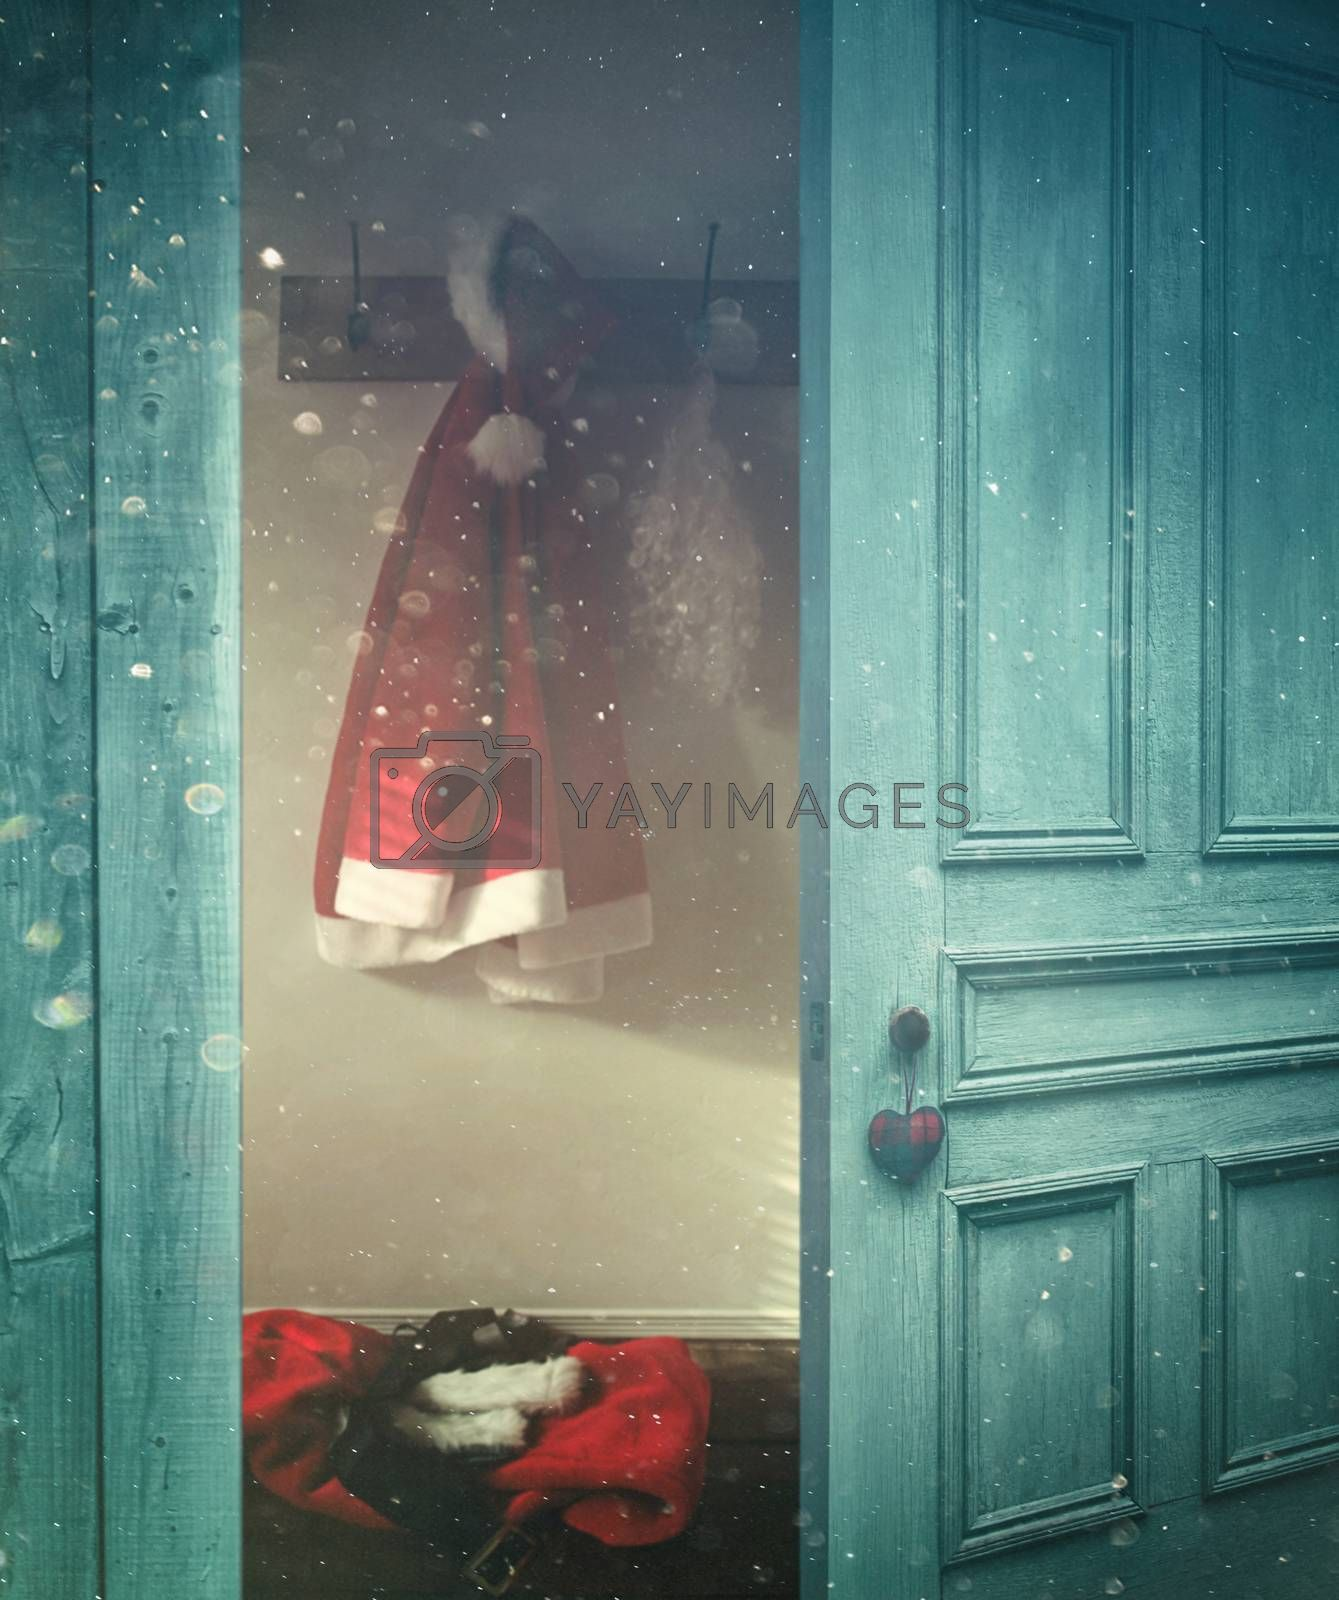 Rustic door opening into a room decorated for Christmas